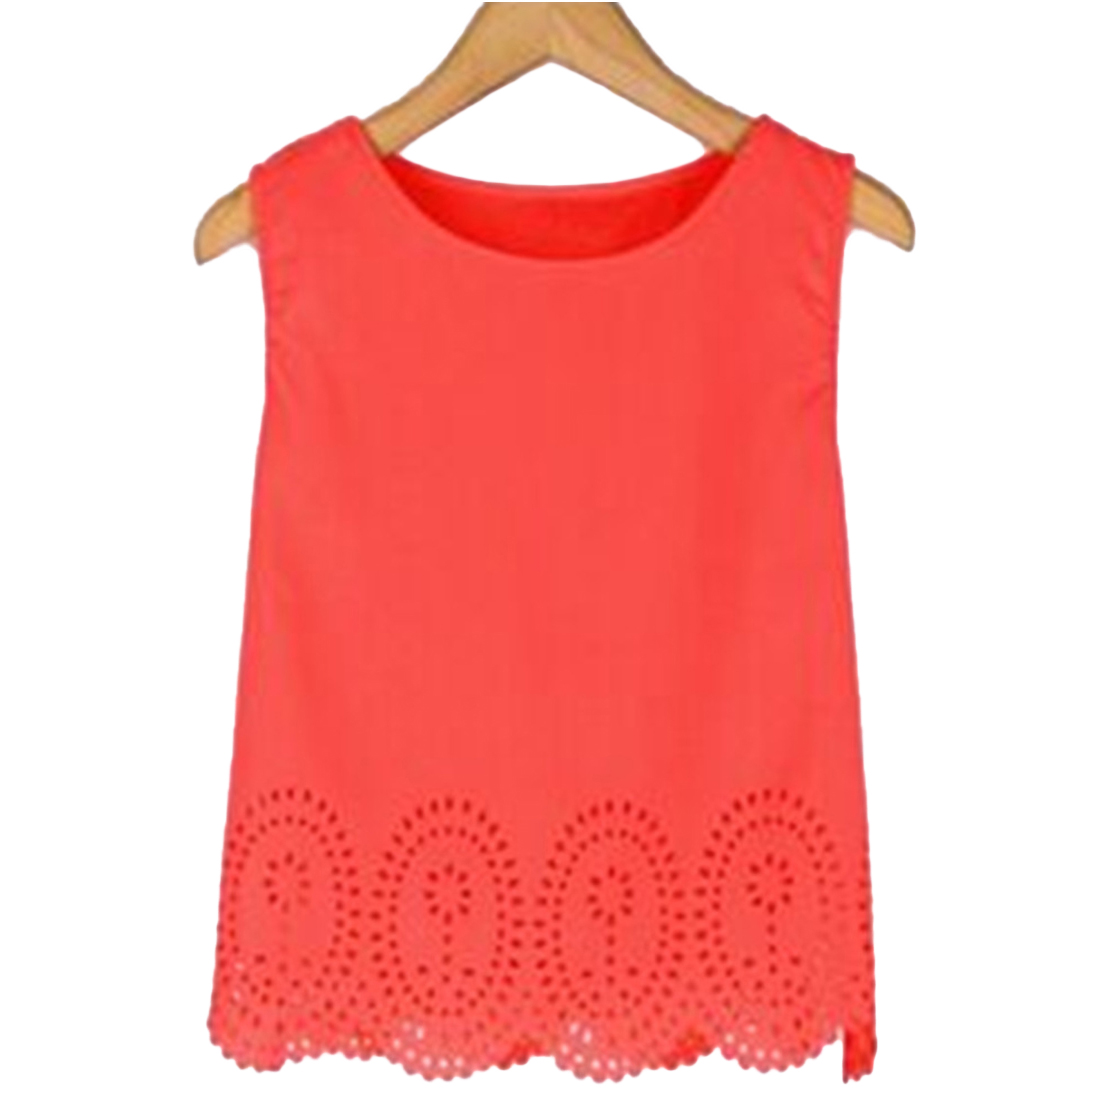 Women Sexy Crop Top Vintage Tops Female Summer Vest -9797